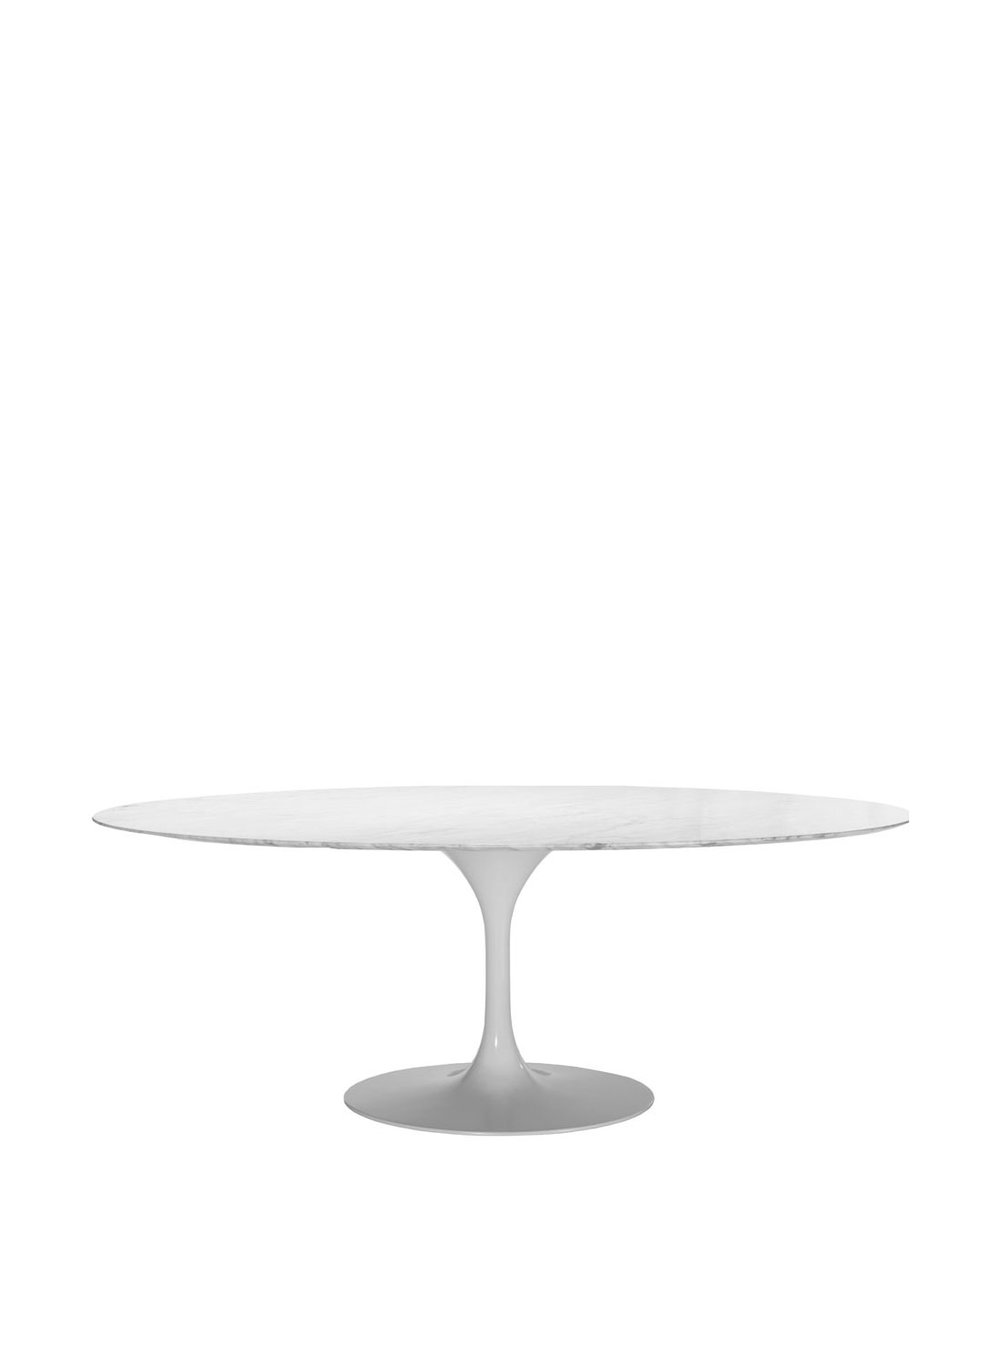 Saarinen-Style Oval Dining Table White Marble 196cm Diameter (Ireland Exclusive)  sc 1 st  CA Design & Saarinen-Style Oval Dining Table White Marble 196cm Diameter ...